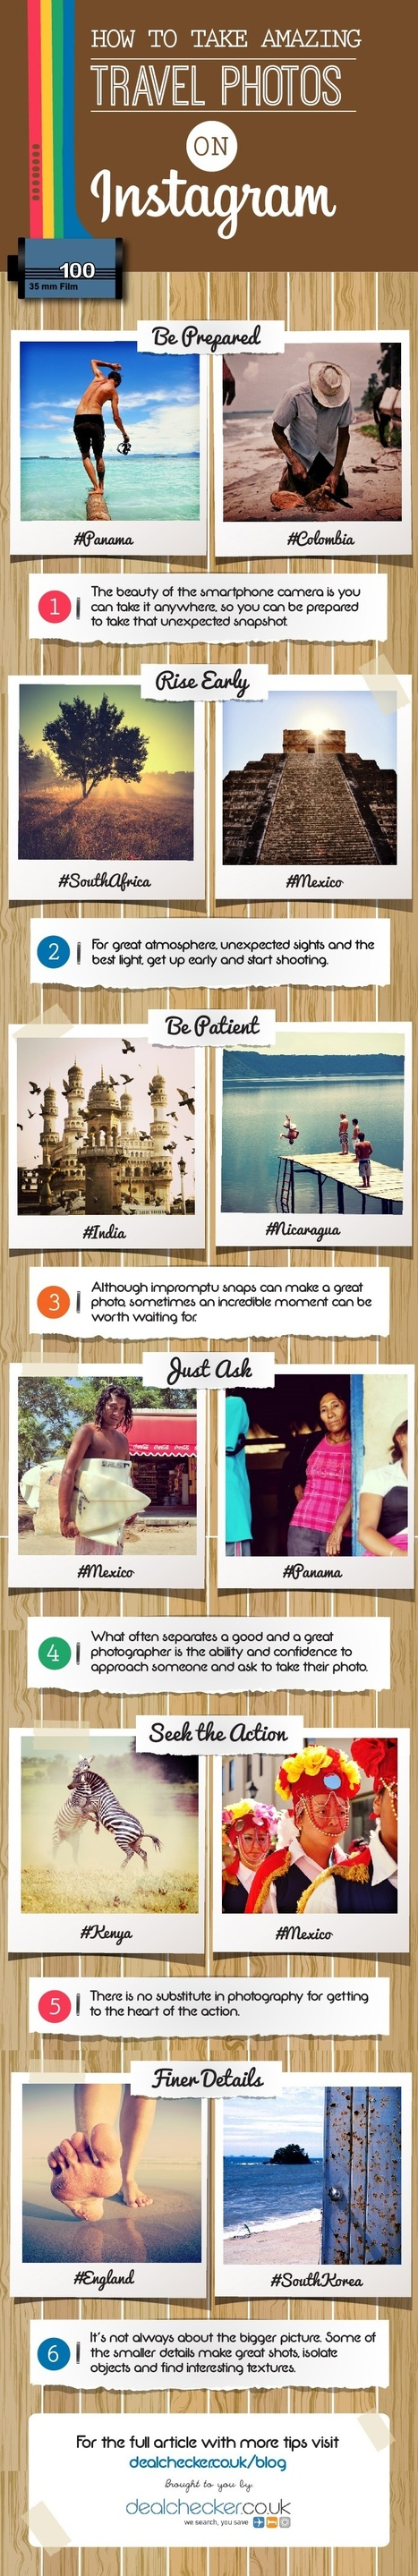 Top Tips for Instagram Travel Photography [Infographic] | MarketingHits | Scoop.it